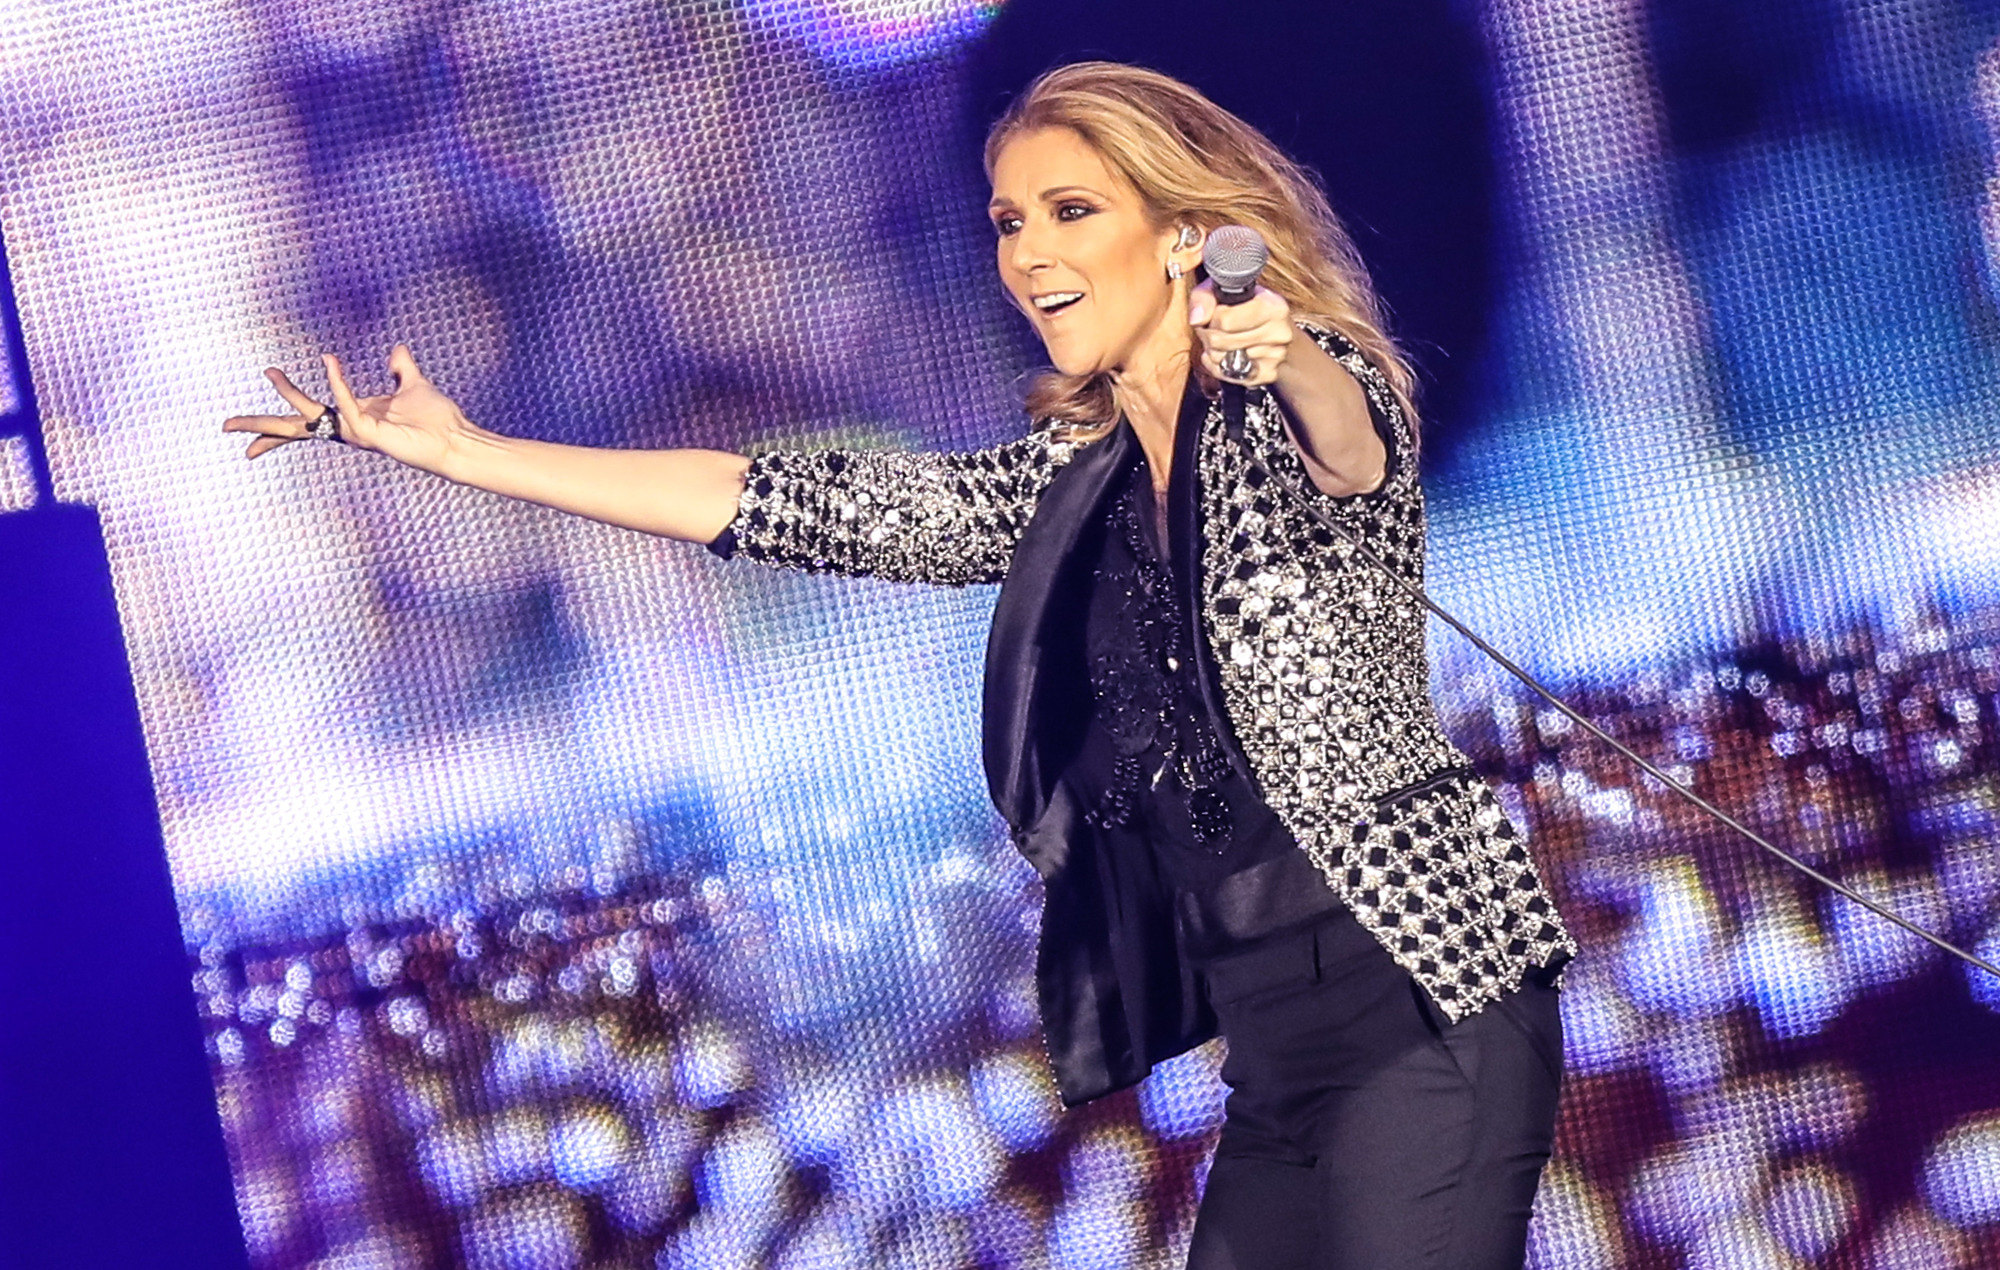 Celine Dion's 'Courage' suffers biggest chart fall ever for an album debuting at Number One